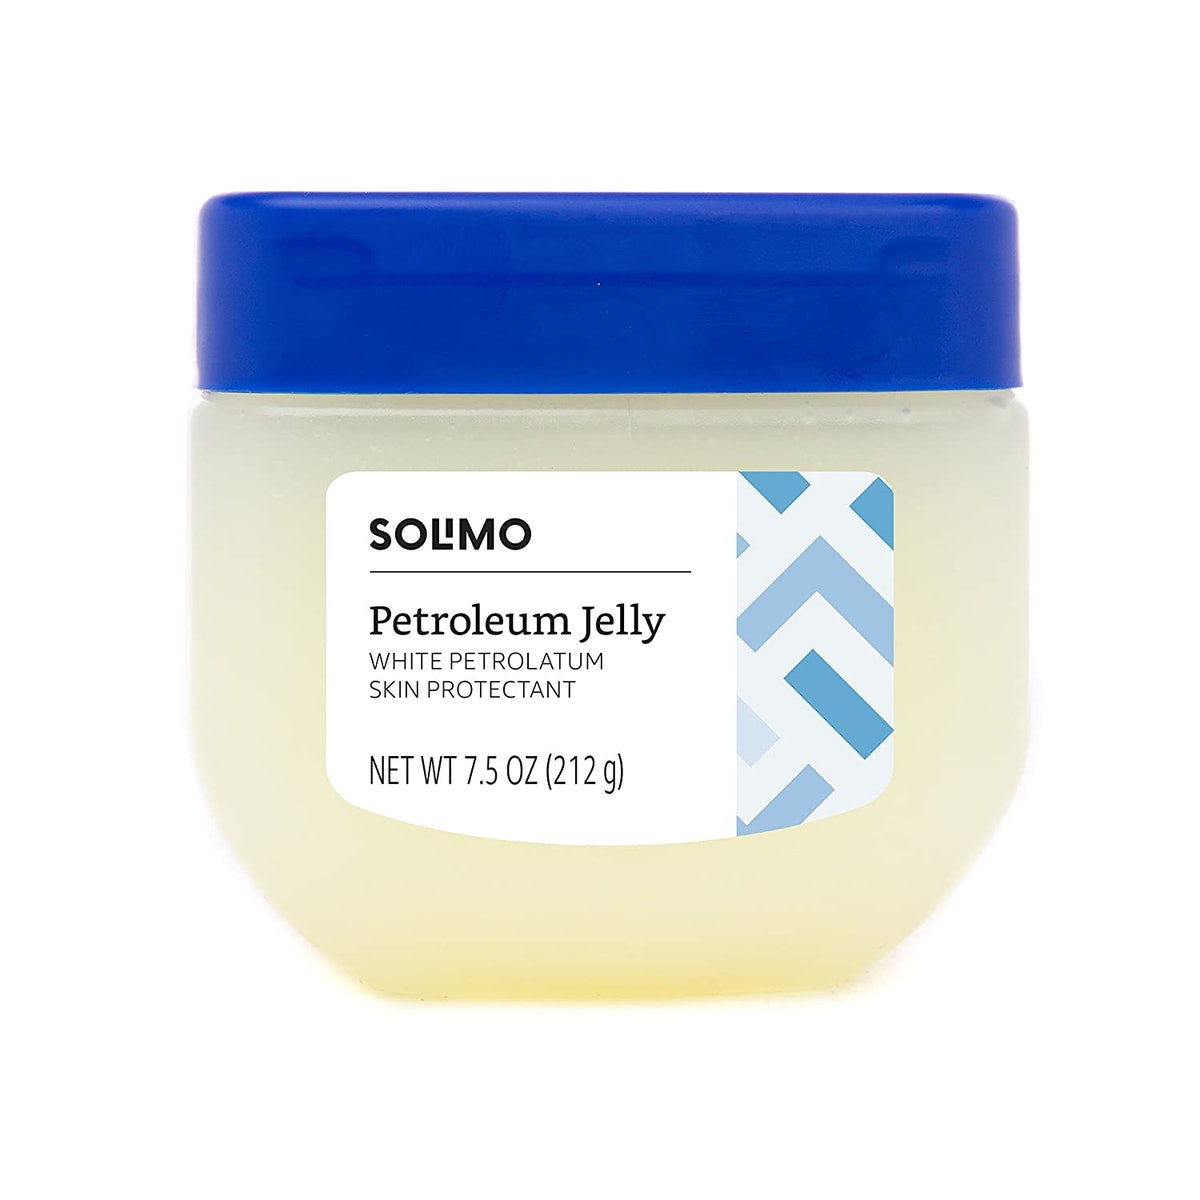 Solimo Petroleum Jelly